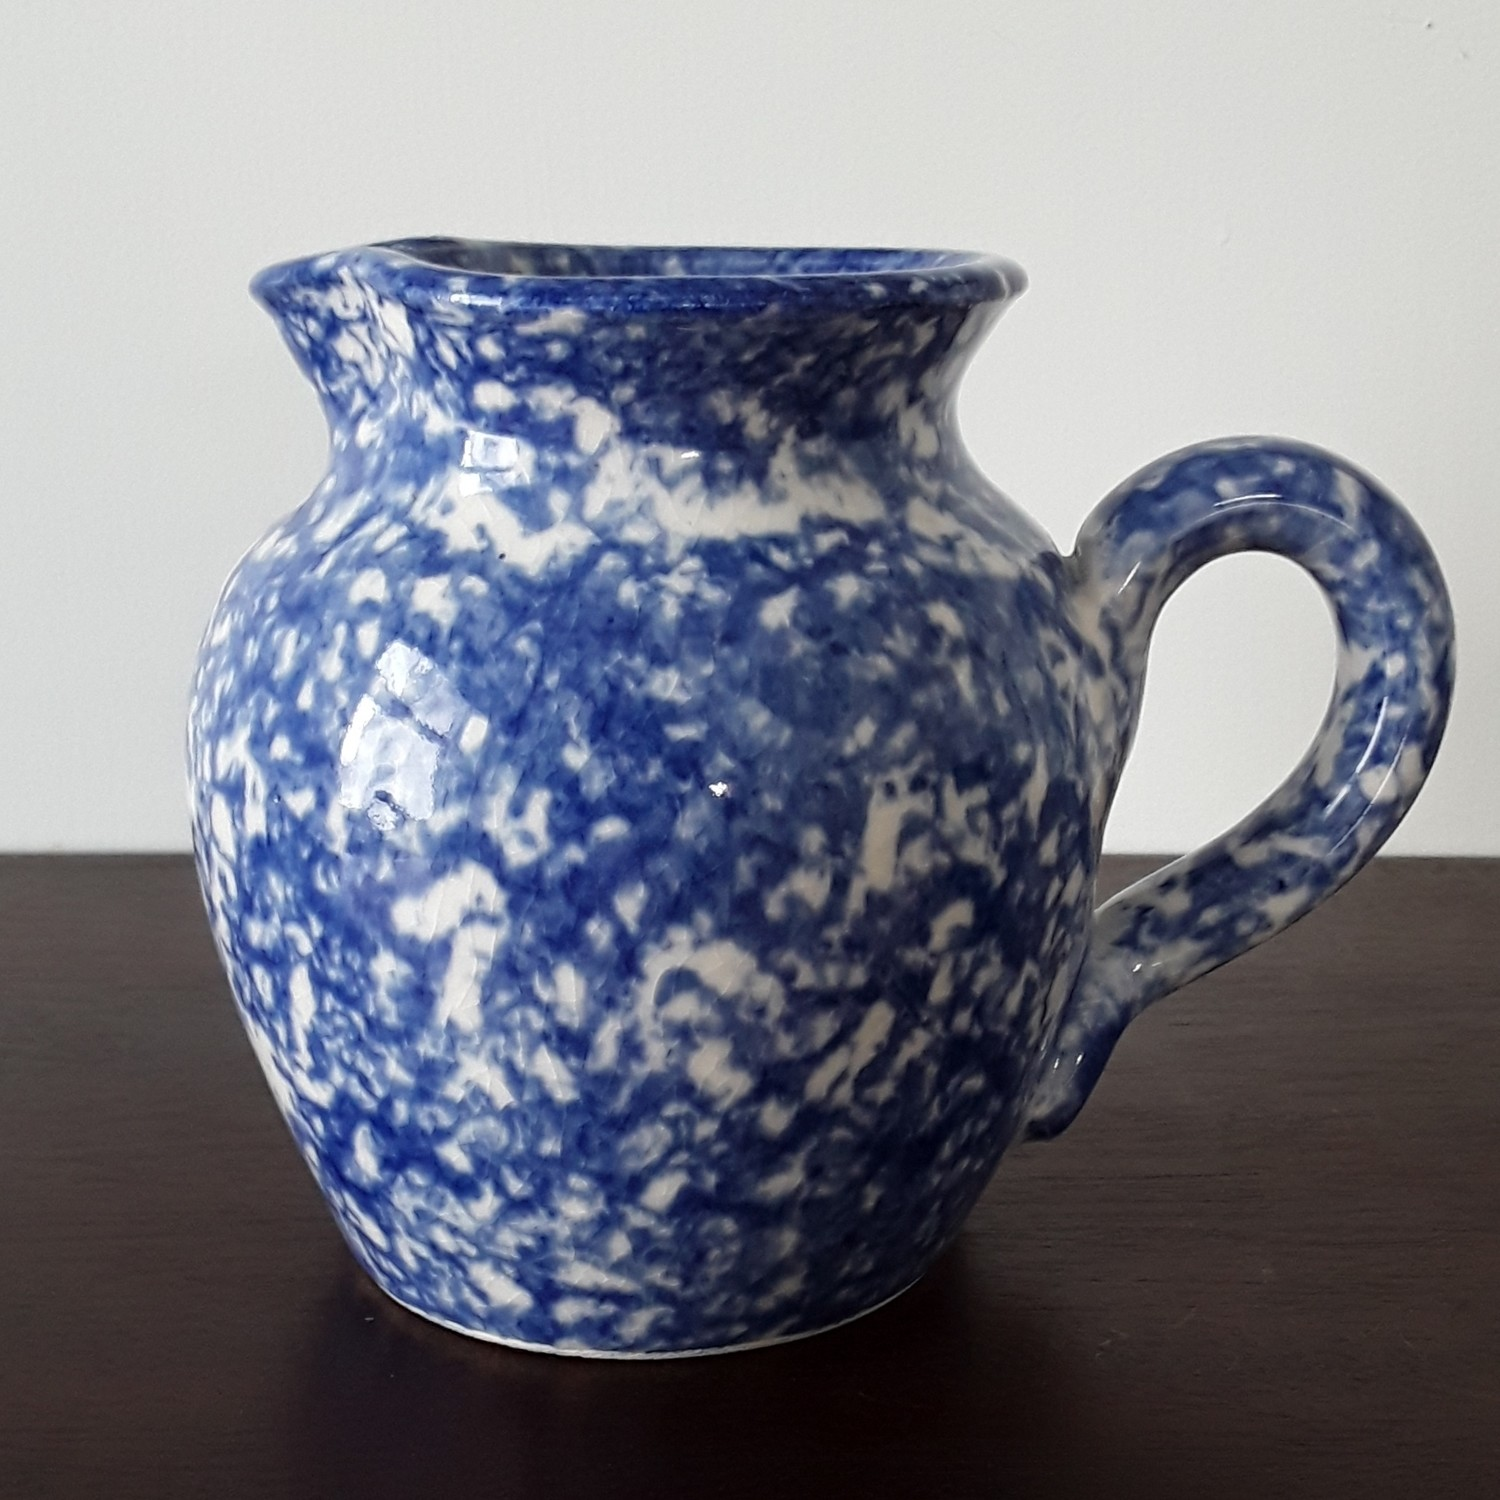 Vintage Blue and White Spongeware Ceramic Pitcher